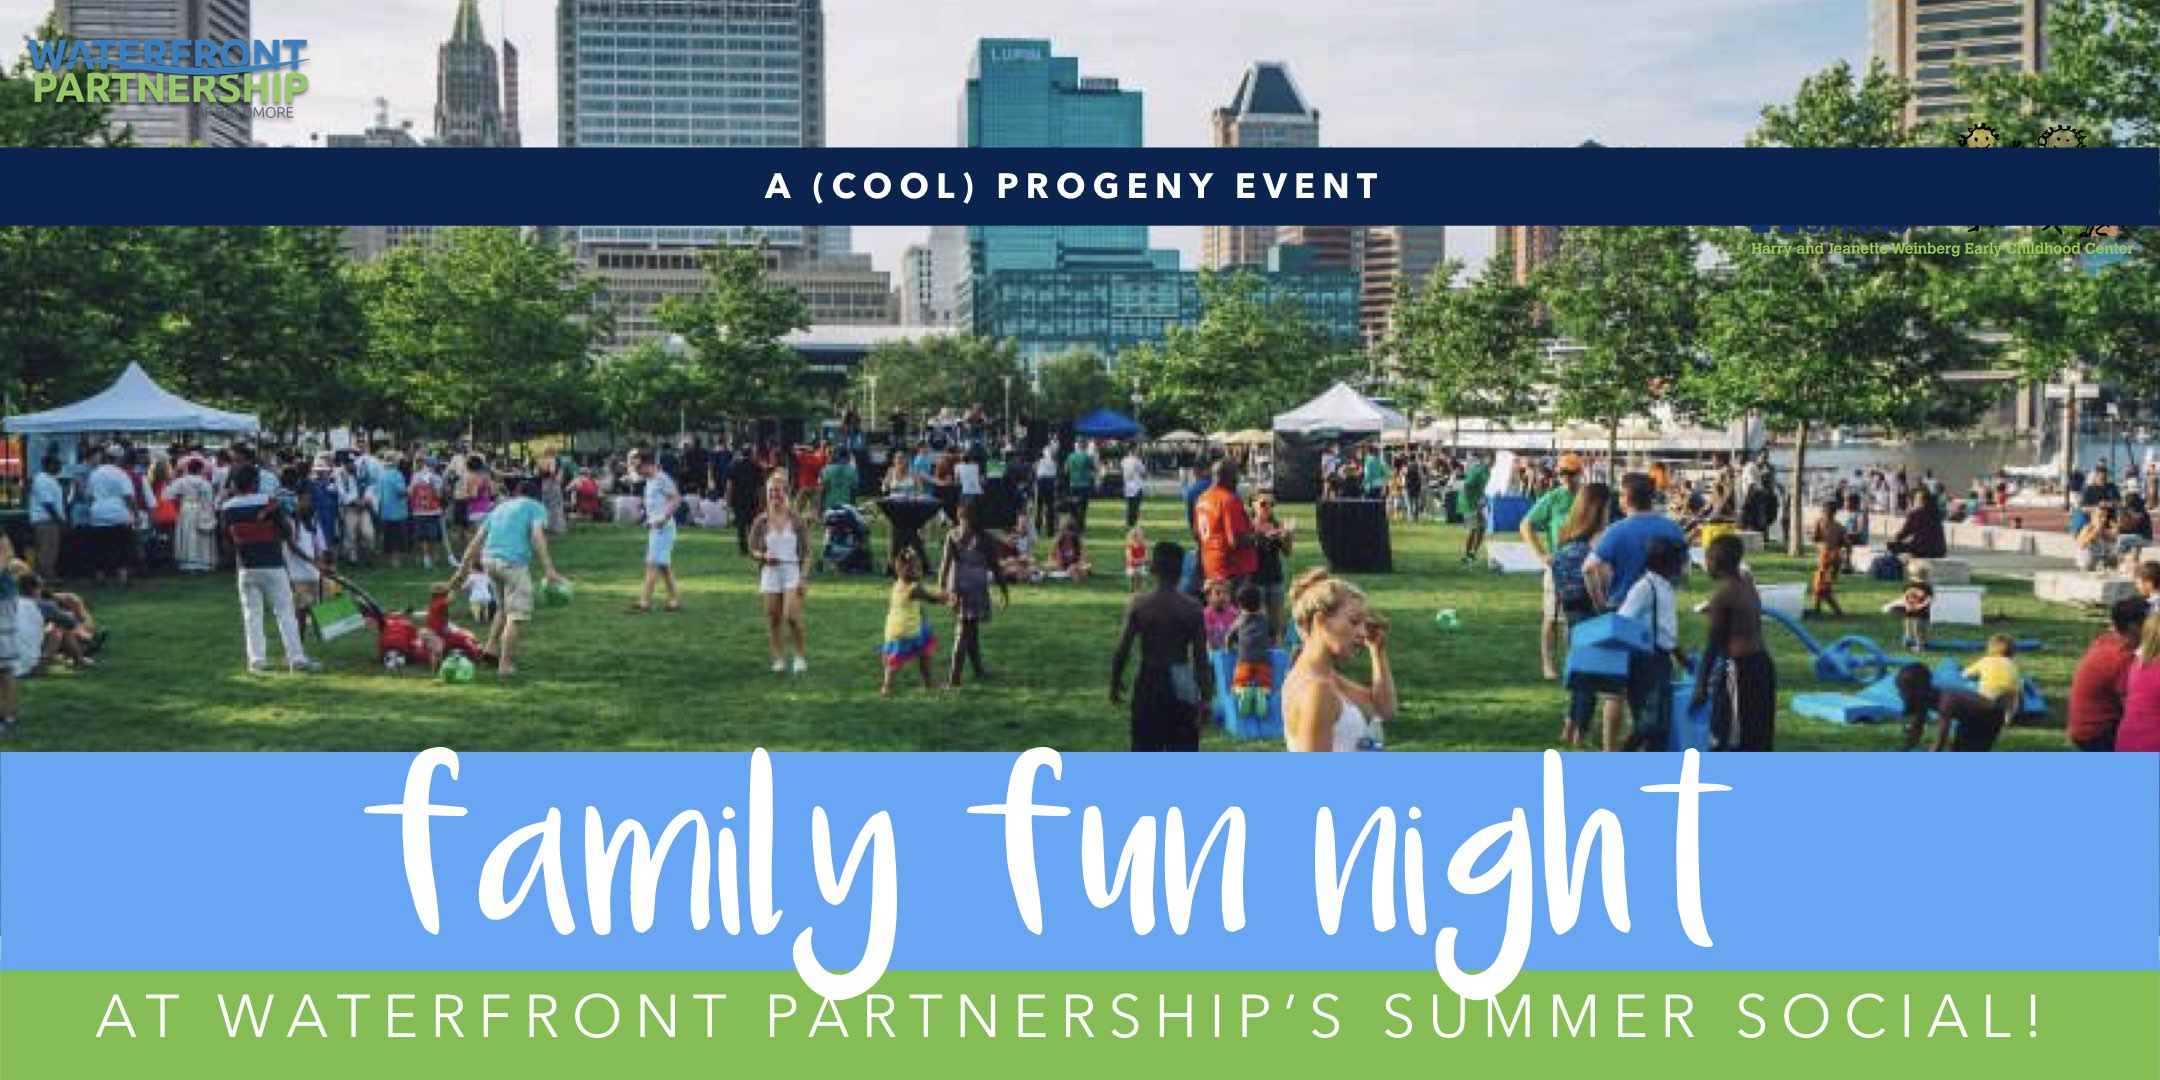 Family Fun Night at Waterfront Partnership's Summer Social - (cool) progeny